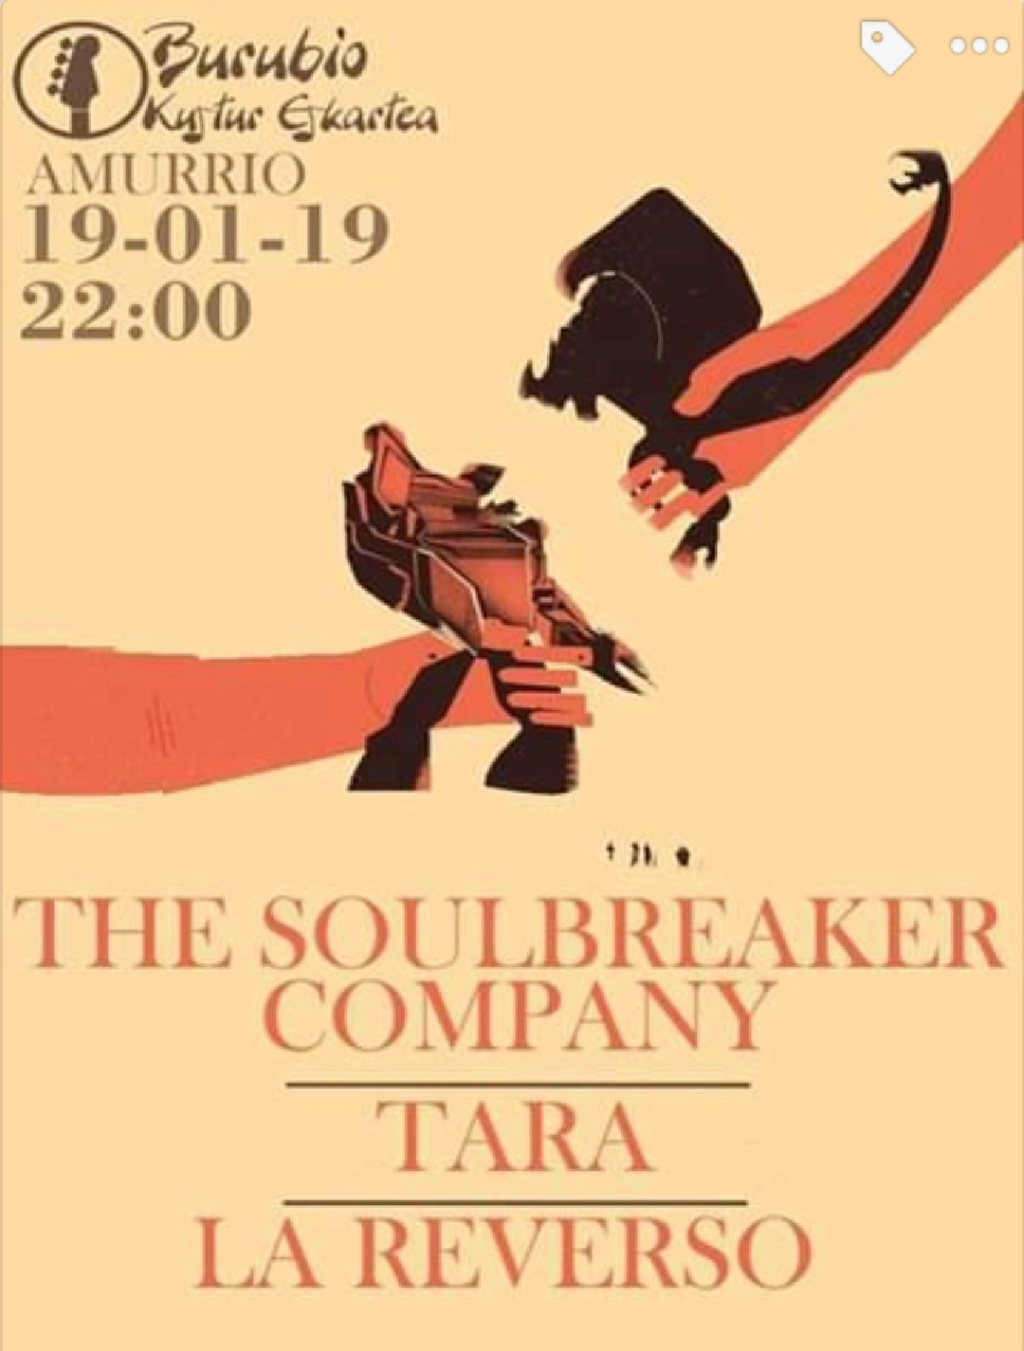 THE SOULBREAKER COMPANY - SEWED WITH LIGHT -30 de Noviembre de 2018 - Página 14 Img_2010